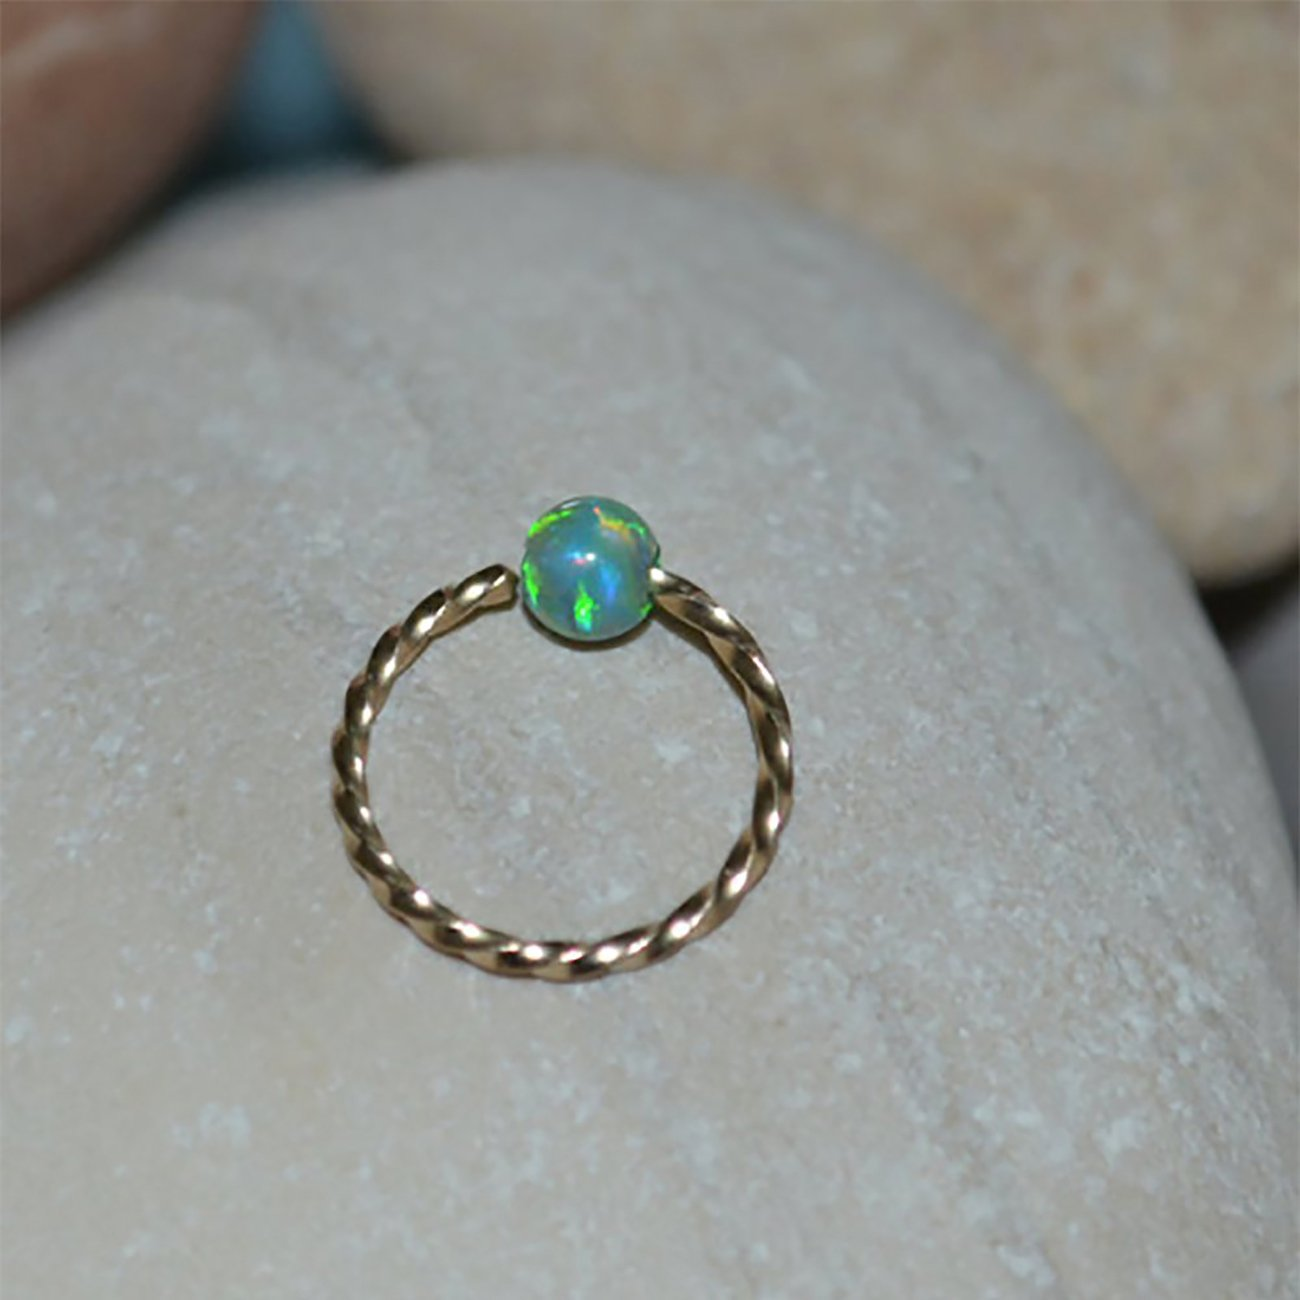 3mm Opal NOSE RING // Gold Nose Ring Stud - 20 gauge Cartilage Earring - Forward Helix Earring - Rook Piercing - Tragus Earring